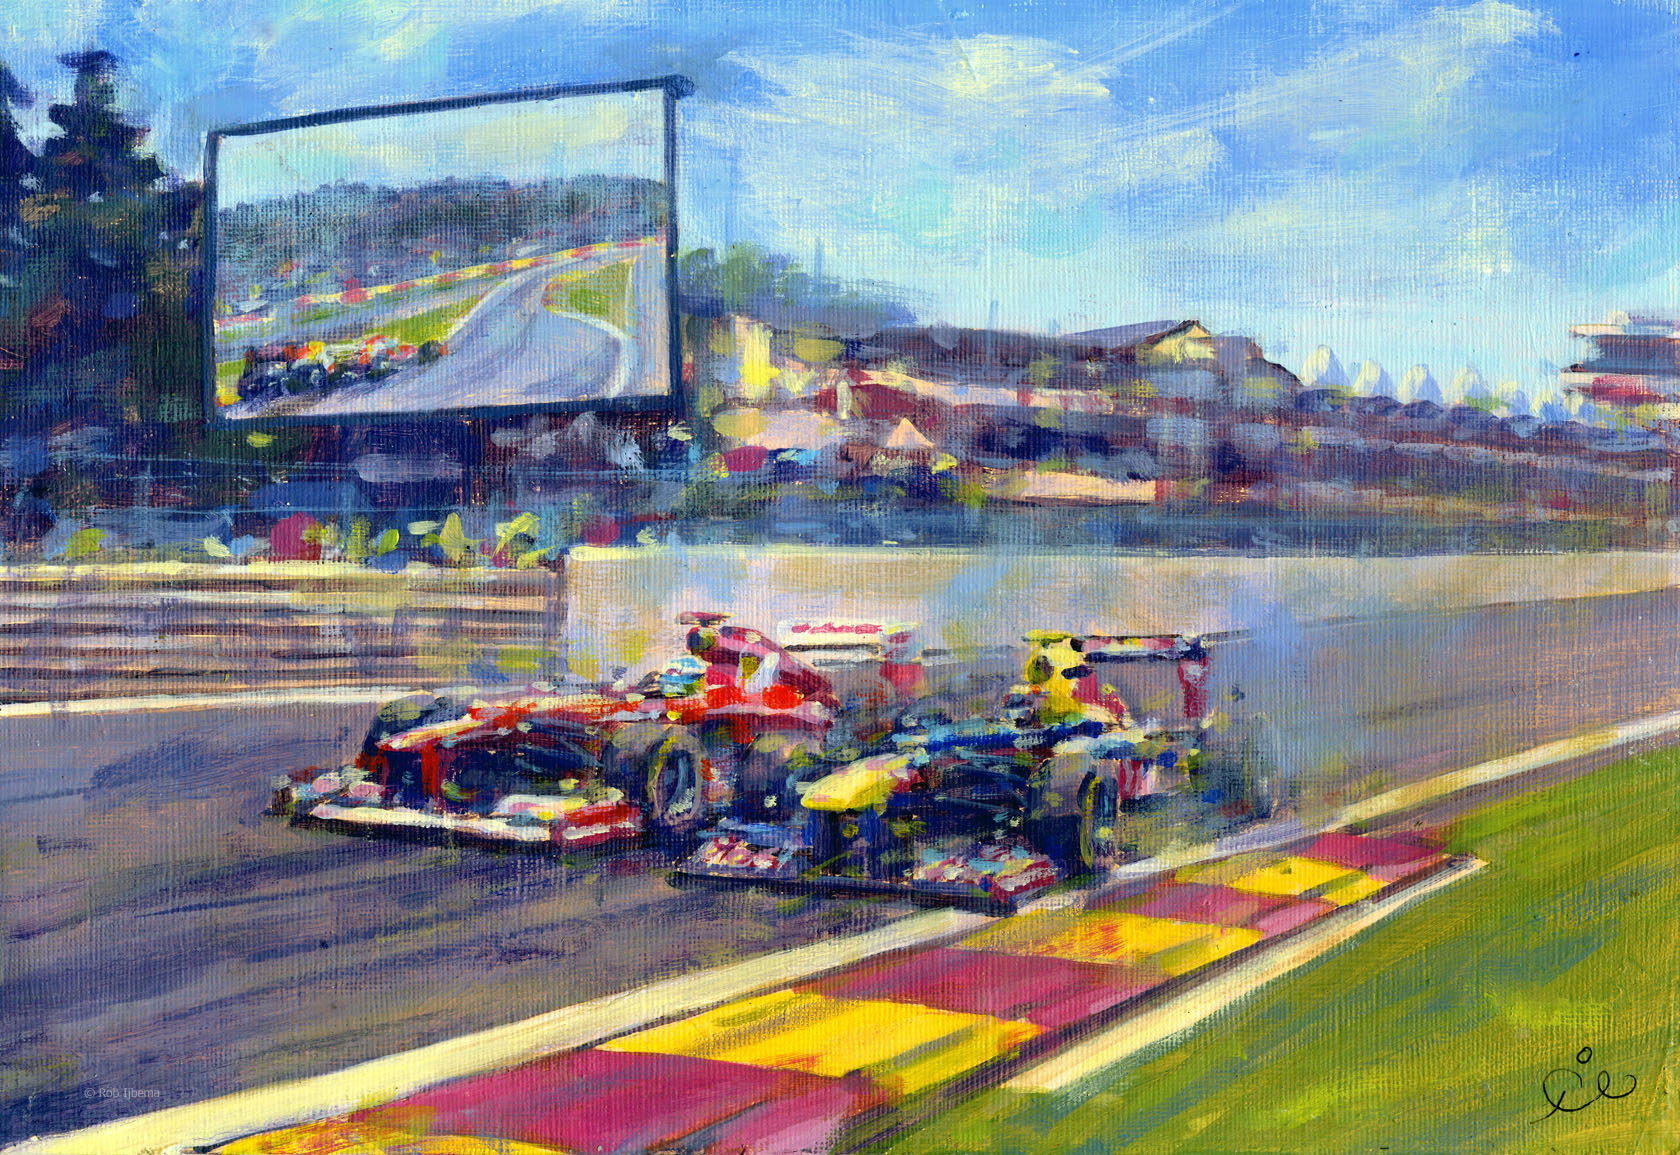 Alonso vs Webber by Rob Ijbema